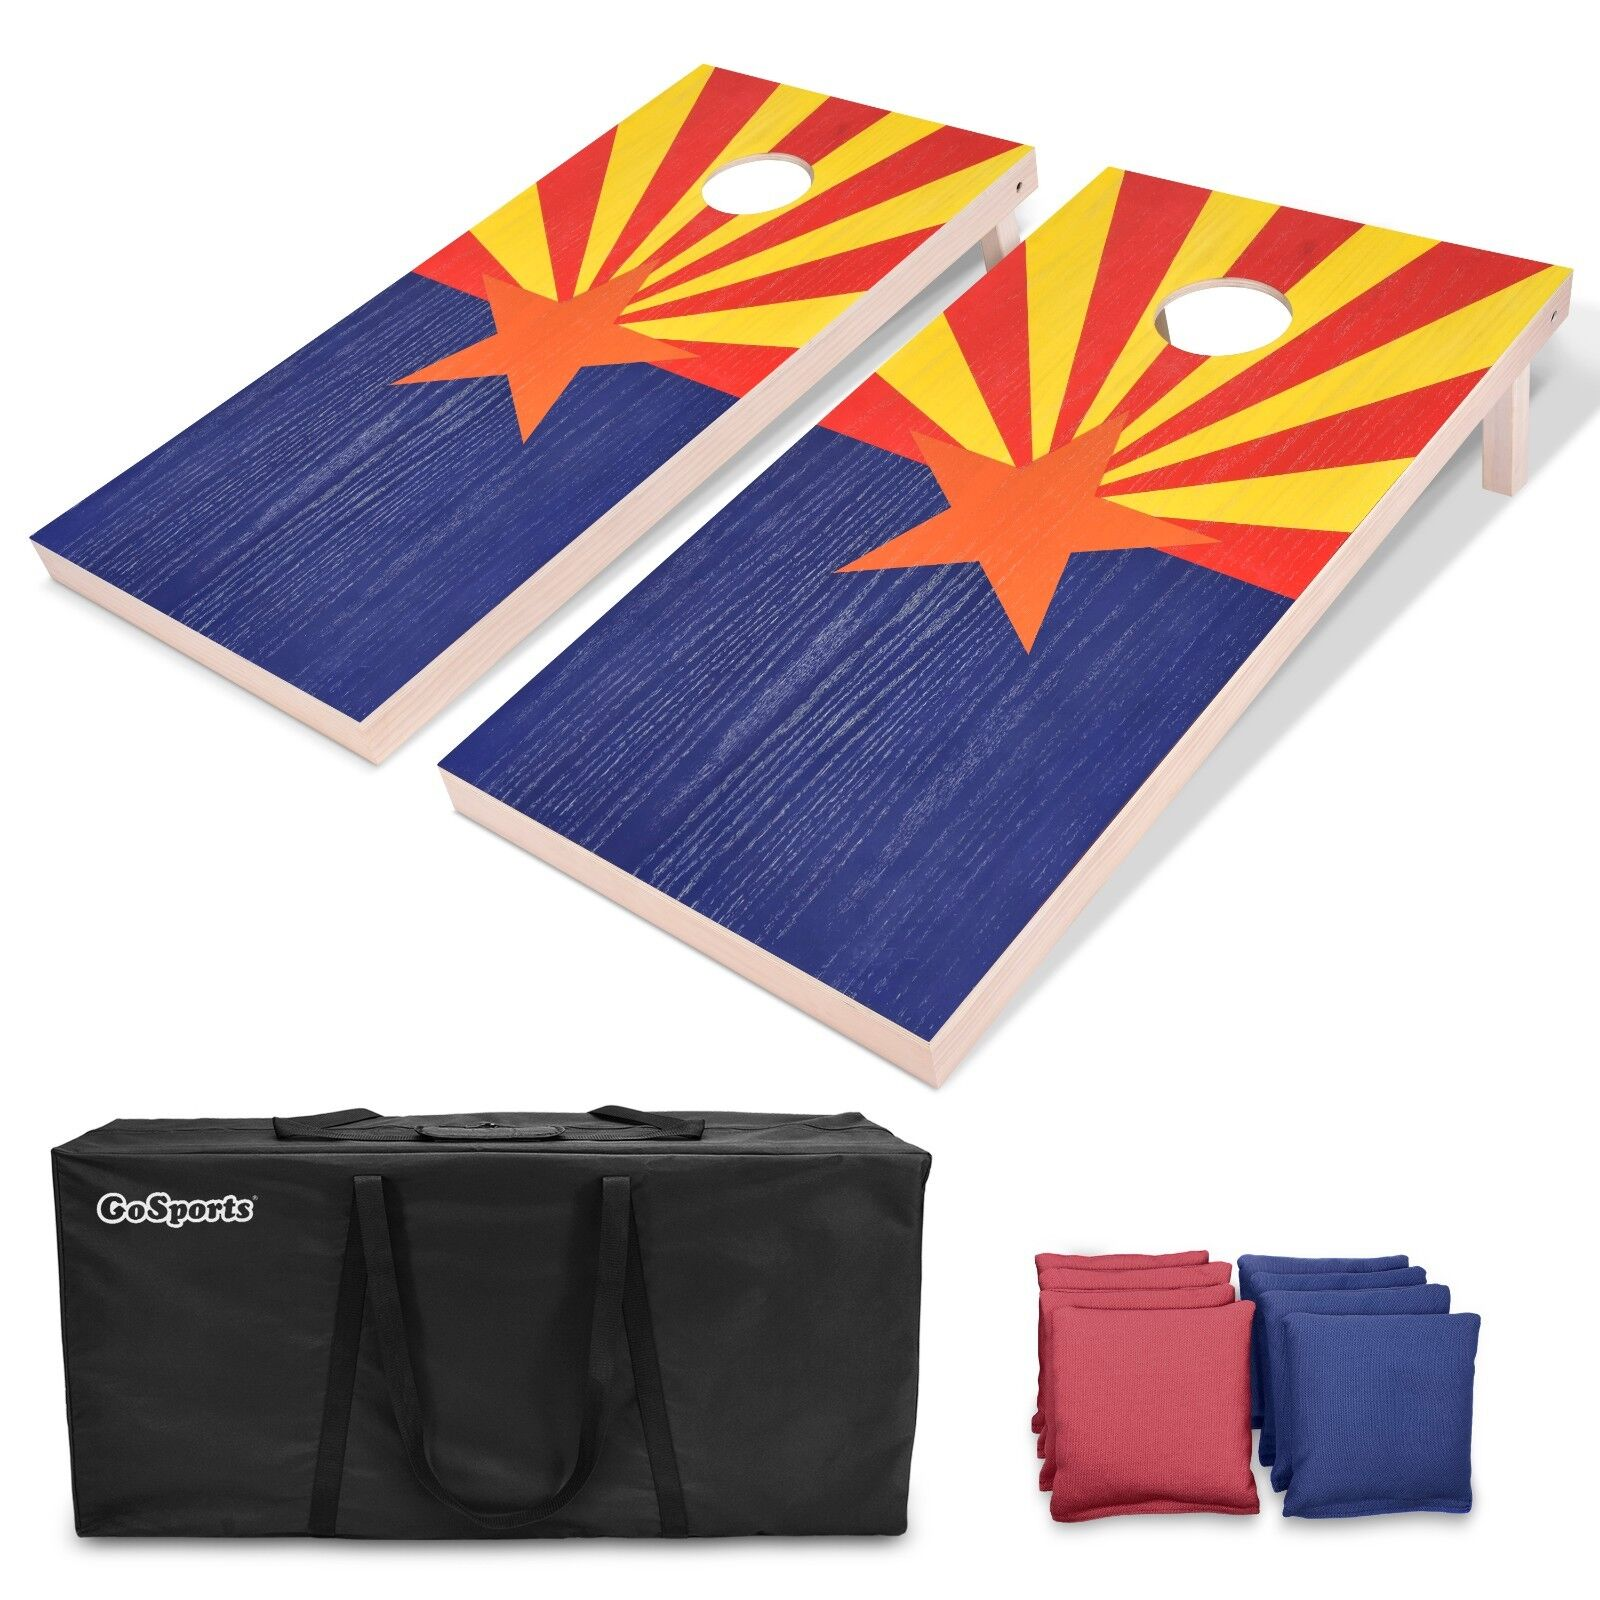 GoSports Arizona State Flag Regulation 4'x2' Solid Wood Cornhole Boards Set